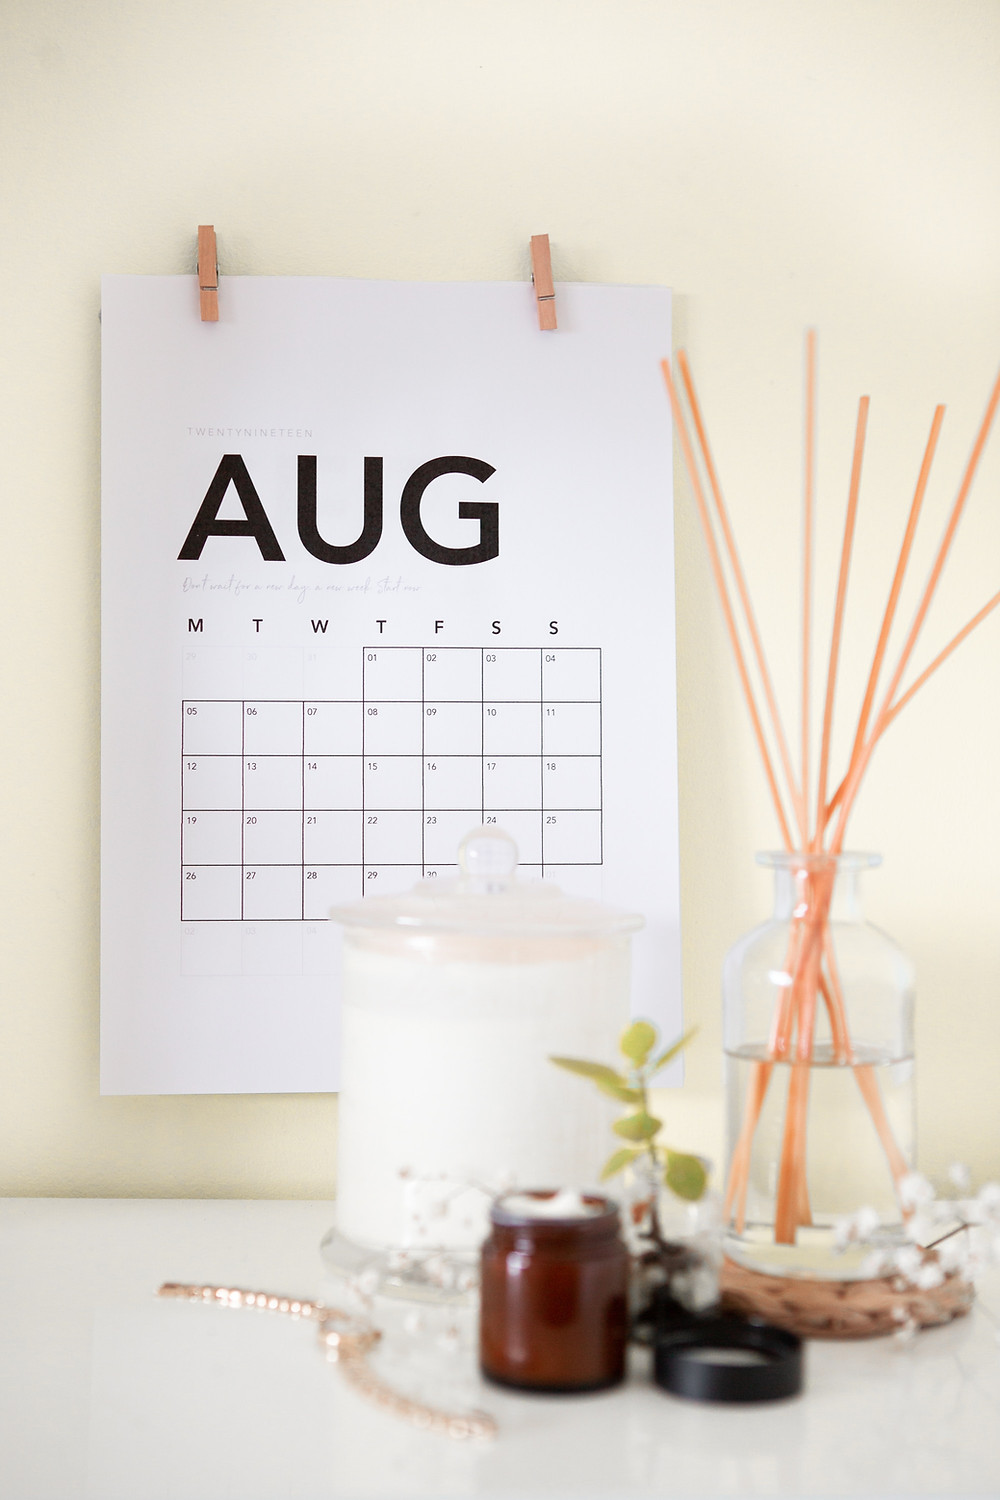 wall calendar turned to August with incense and candle in foreground